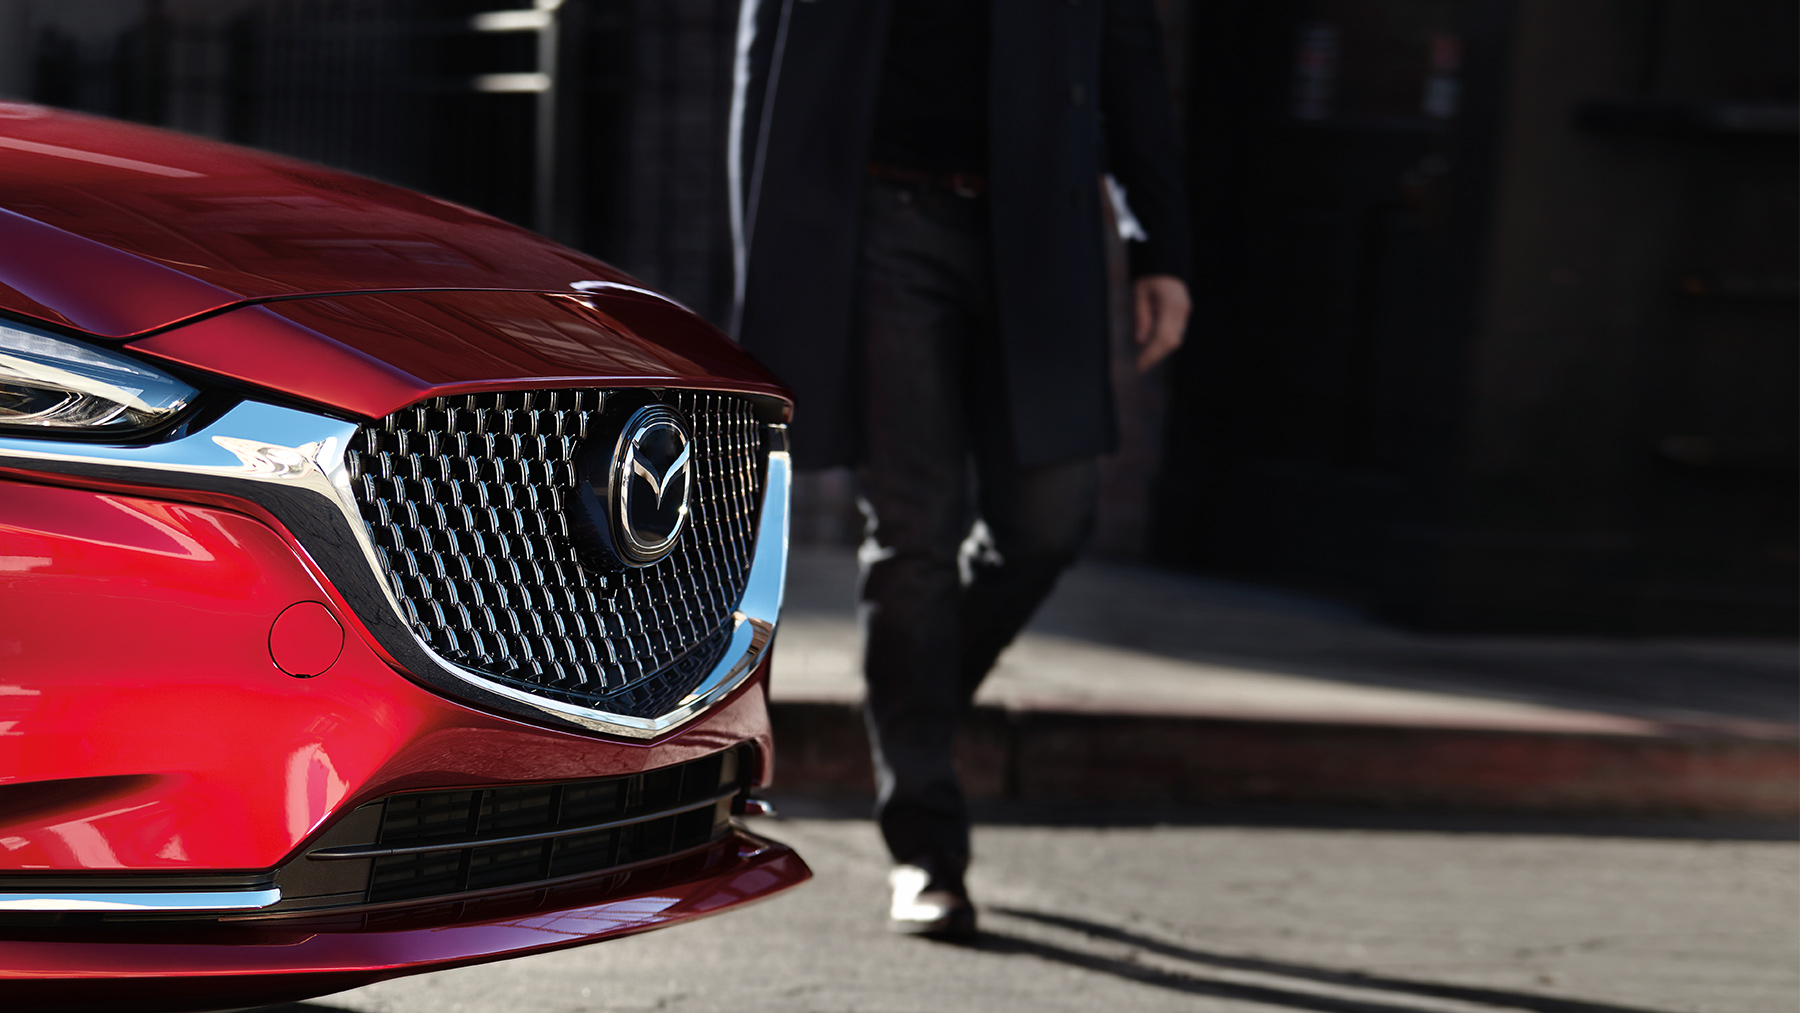 Make a Dazzling Impression in the Mazda6!